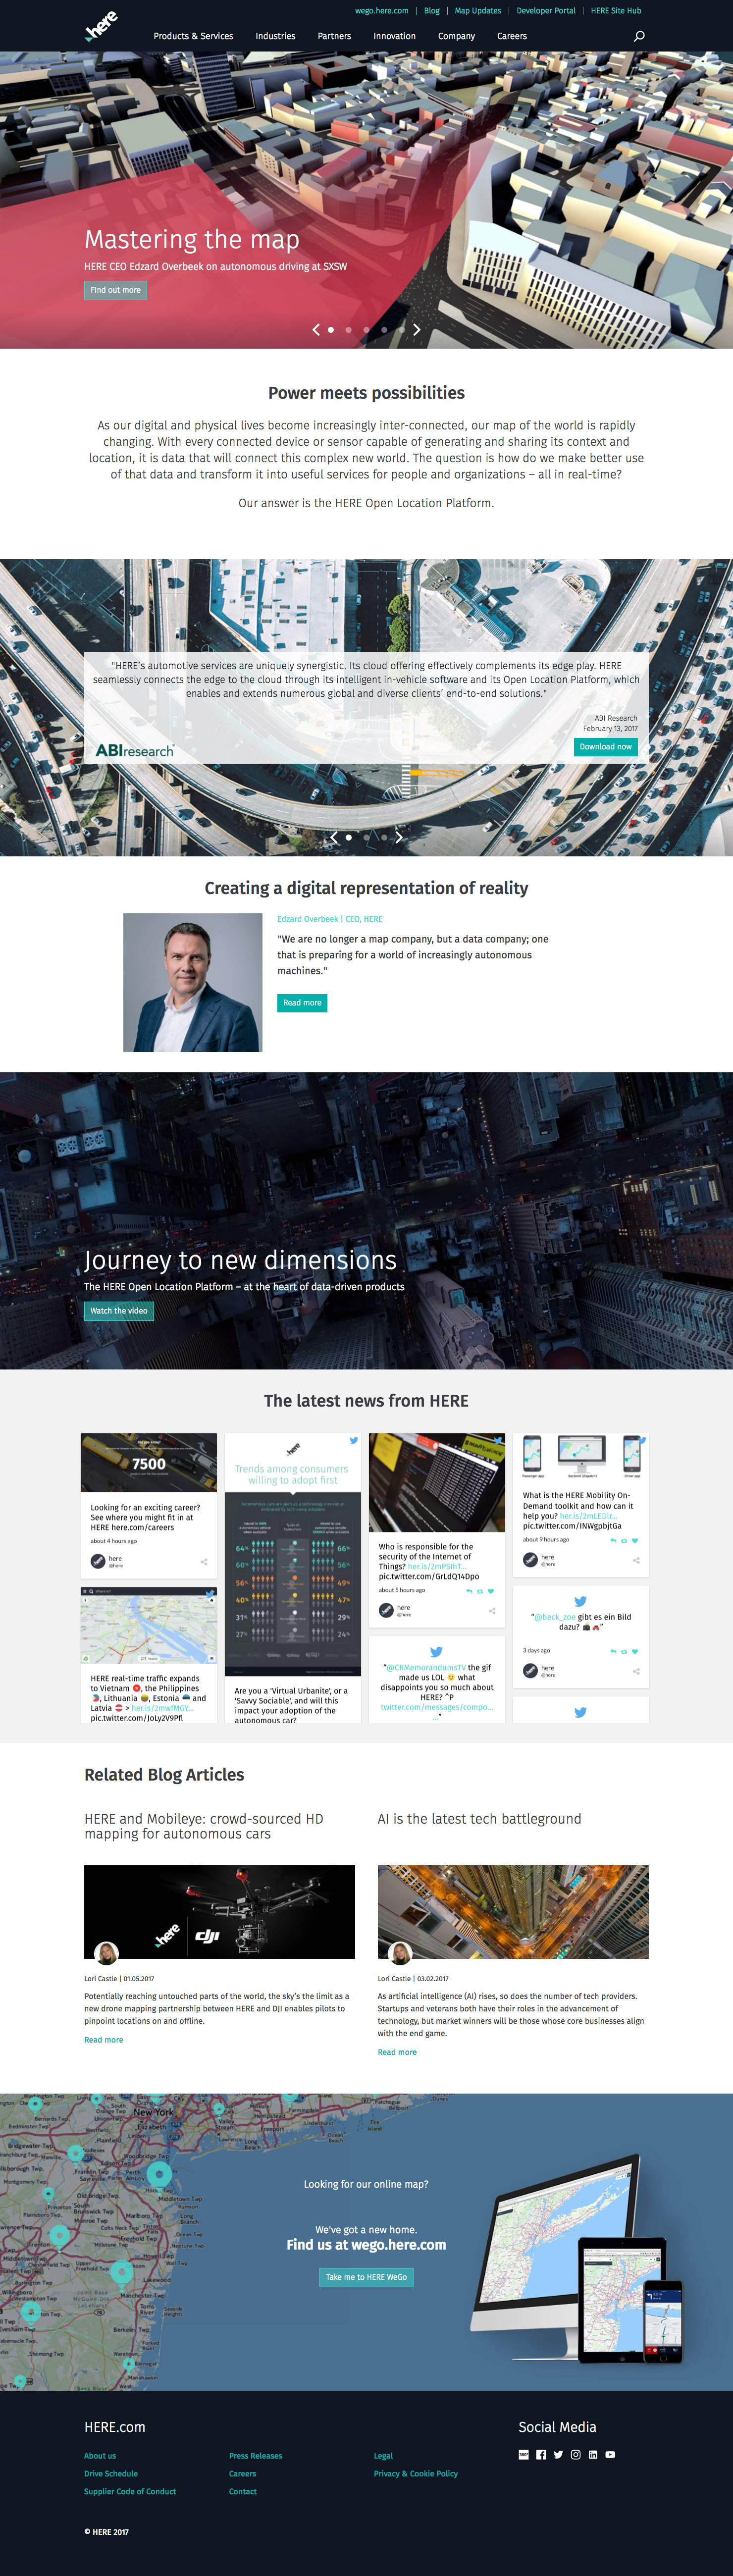 DavidStreit-HERE-Corporate-Website-4-Startseite